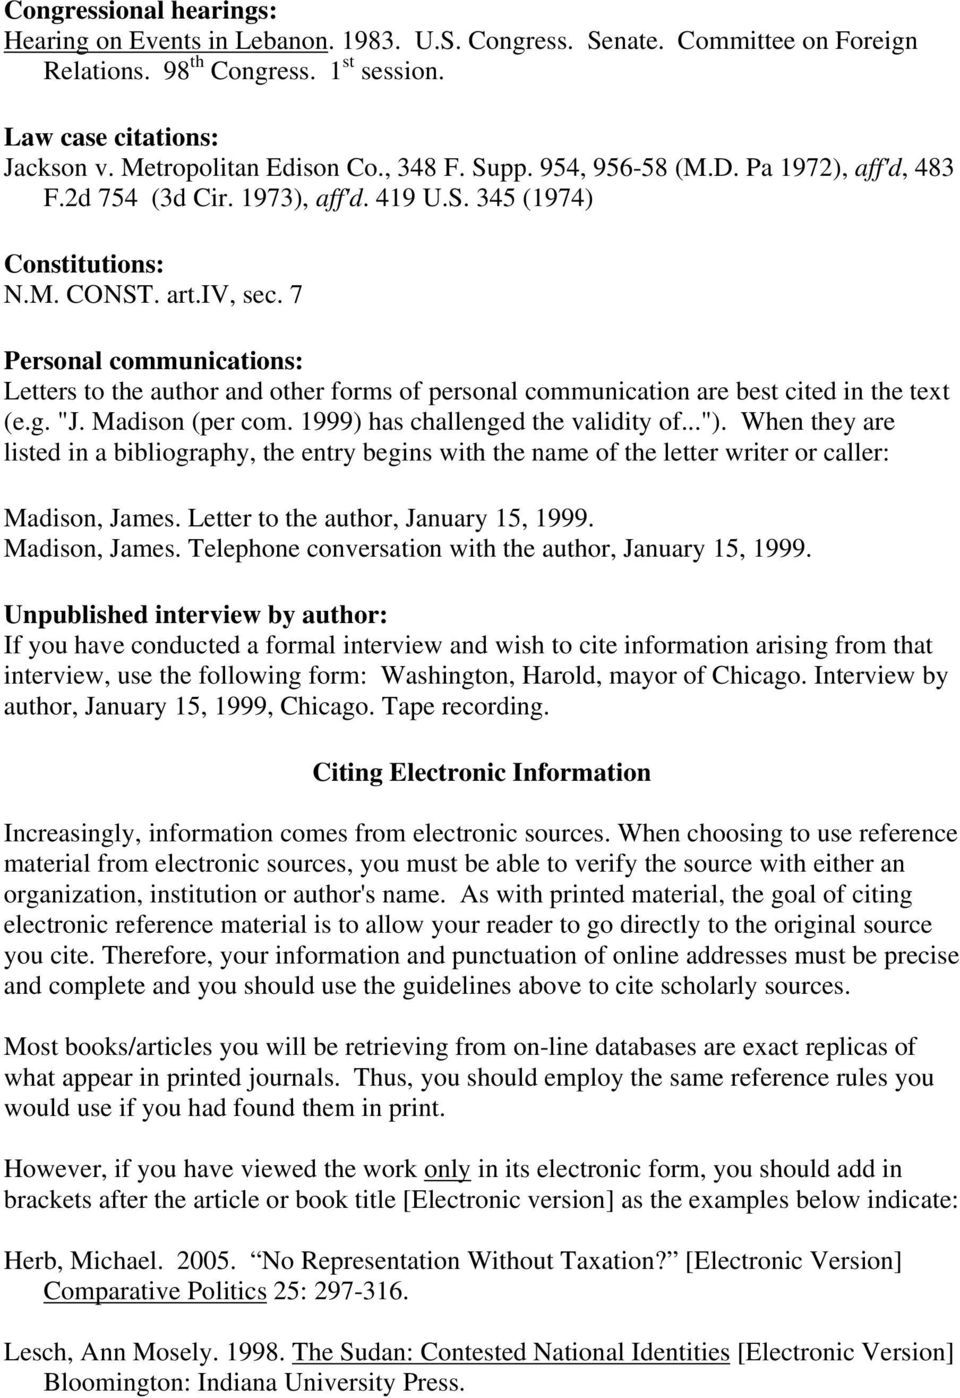 "7 Personal communications: Letters to the author and other forms of personal communication are best cited in the text (e.g. ""J. Madison (per com. 1999) has challenged the validity of..."")."